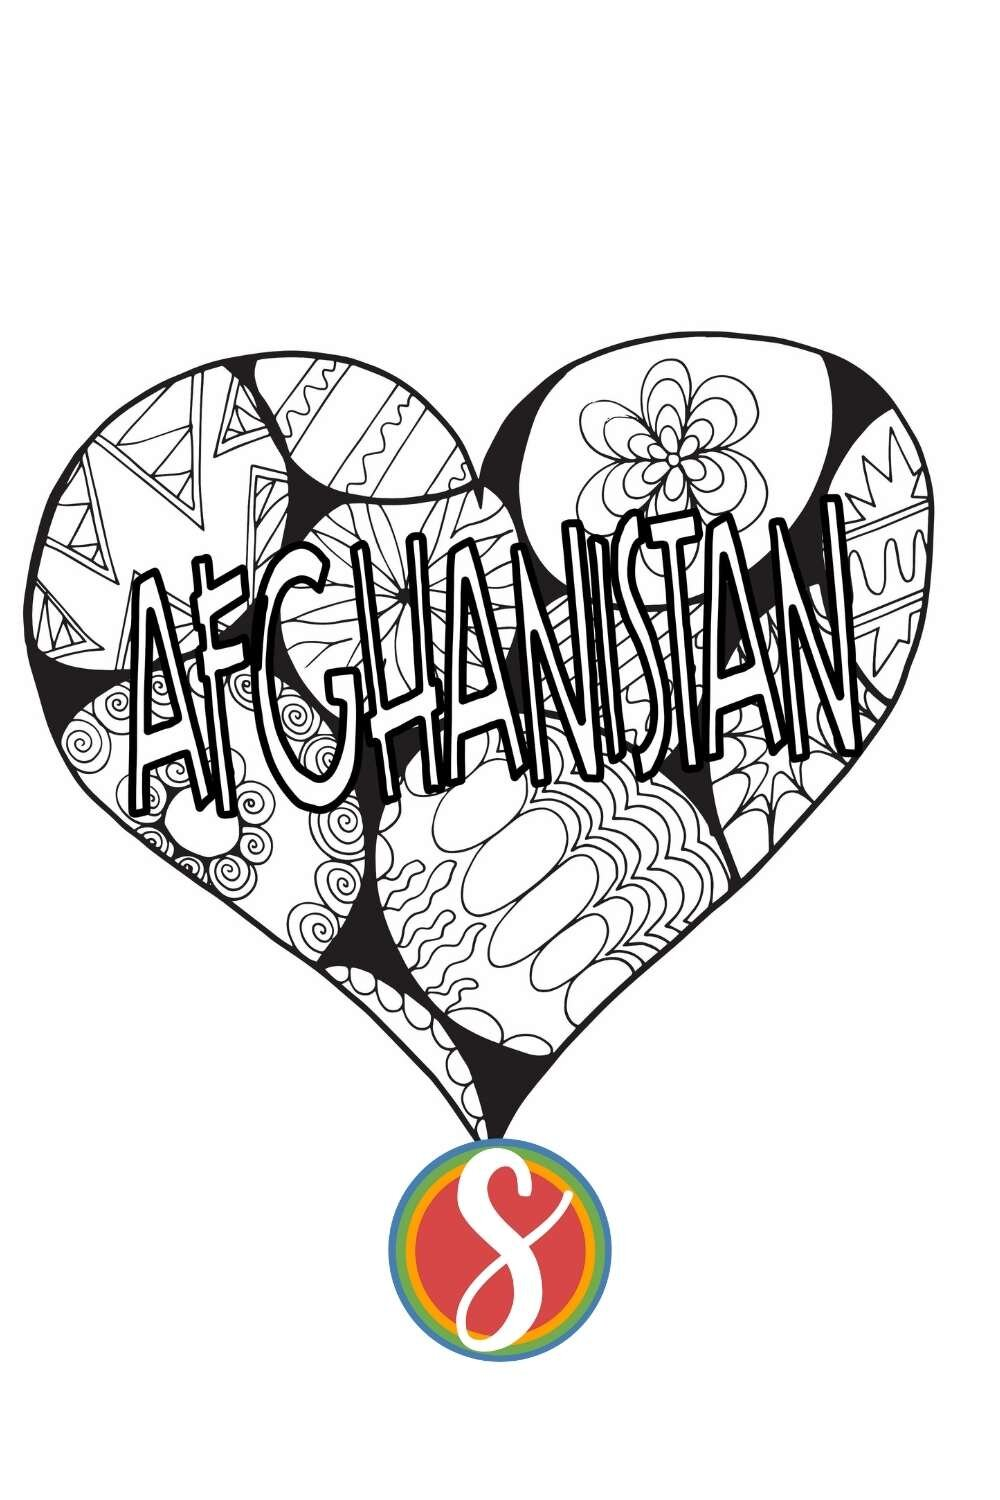 Praying for Afghanistan - Stevie Doodles profits for August and September 2021 will be split between two organizations doing good work in Afghanistan